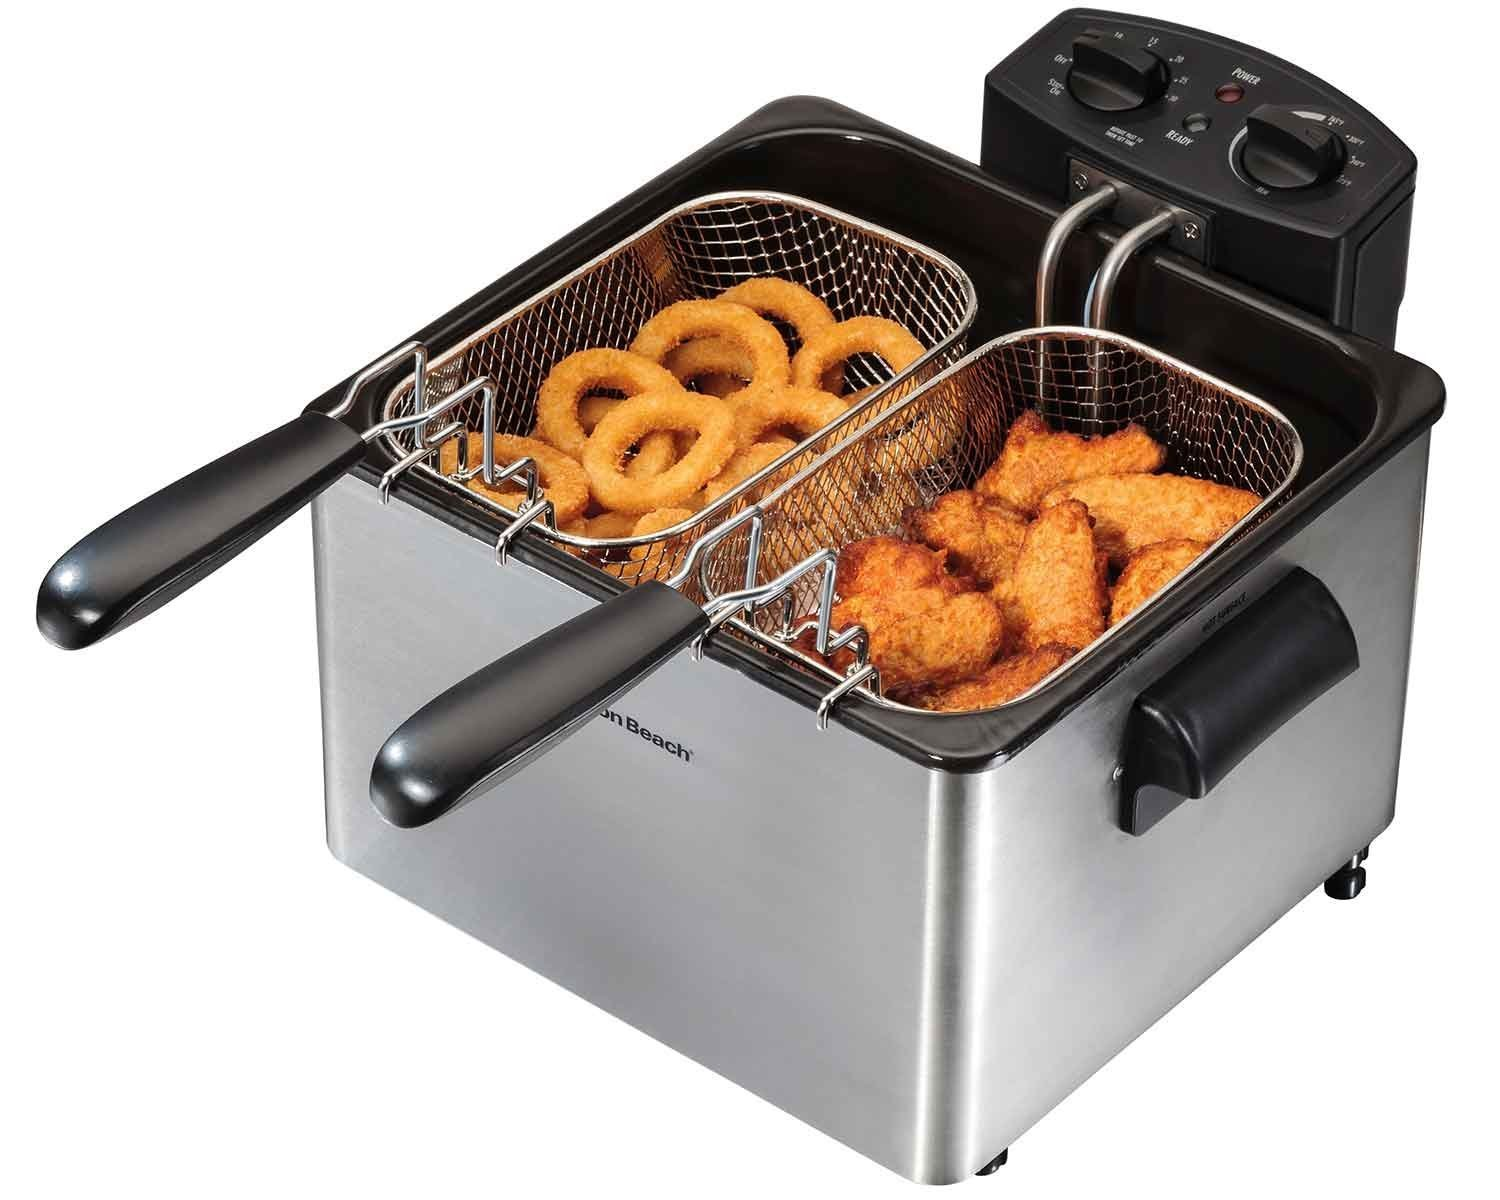 Hamilton Beach Professional-Style Electric Deep Fryer, 12-Cup Oil Capacity (35034) (2)